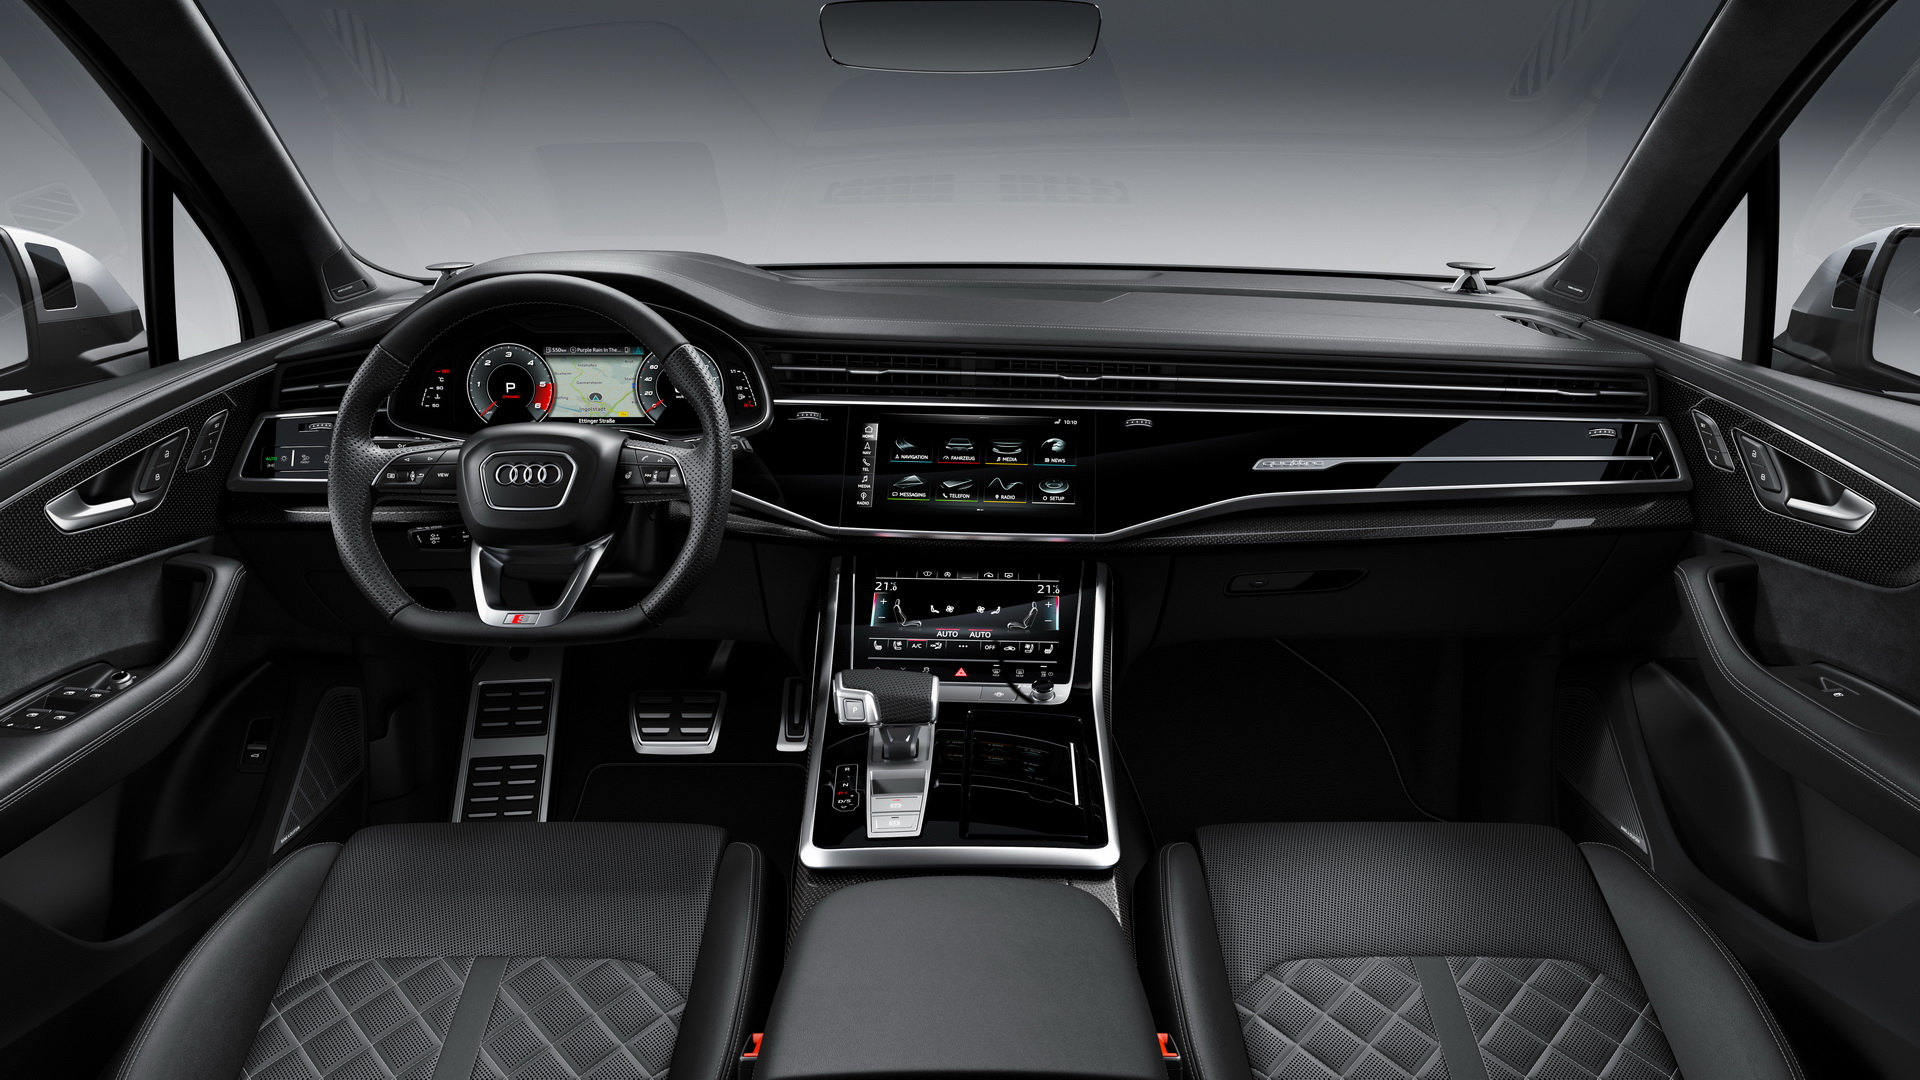 Facelifted 2020 Audi SQ7 TDI gains fresh design and upgraded interior